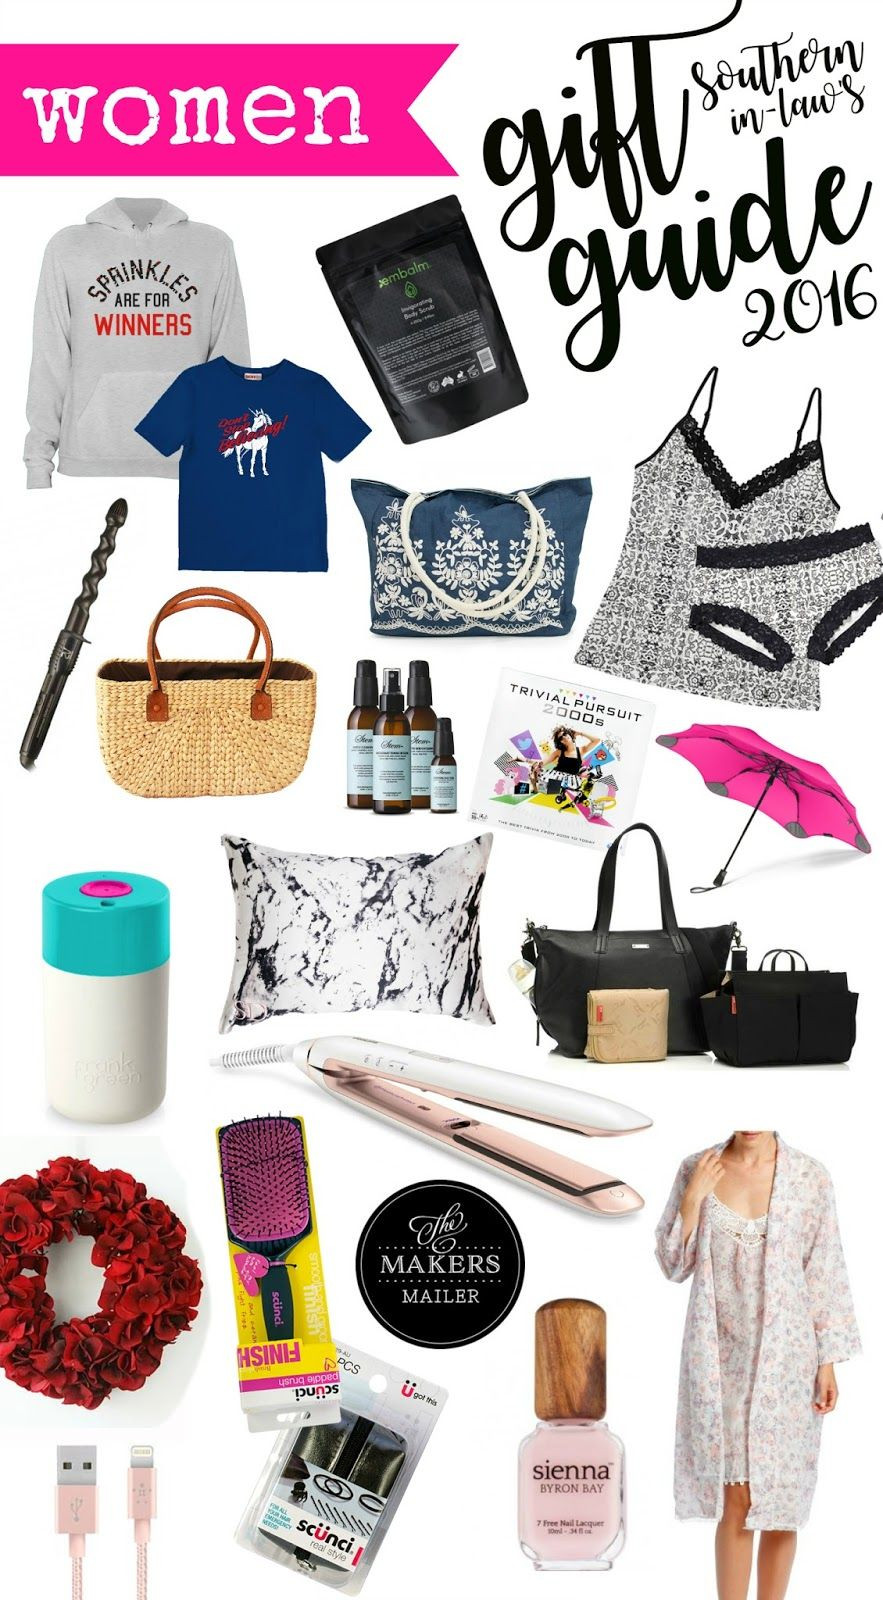 Best ideas about Gift Ideas For Female Friend . Save or Pin 2016 Women s Christmas Gift Guide Now.